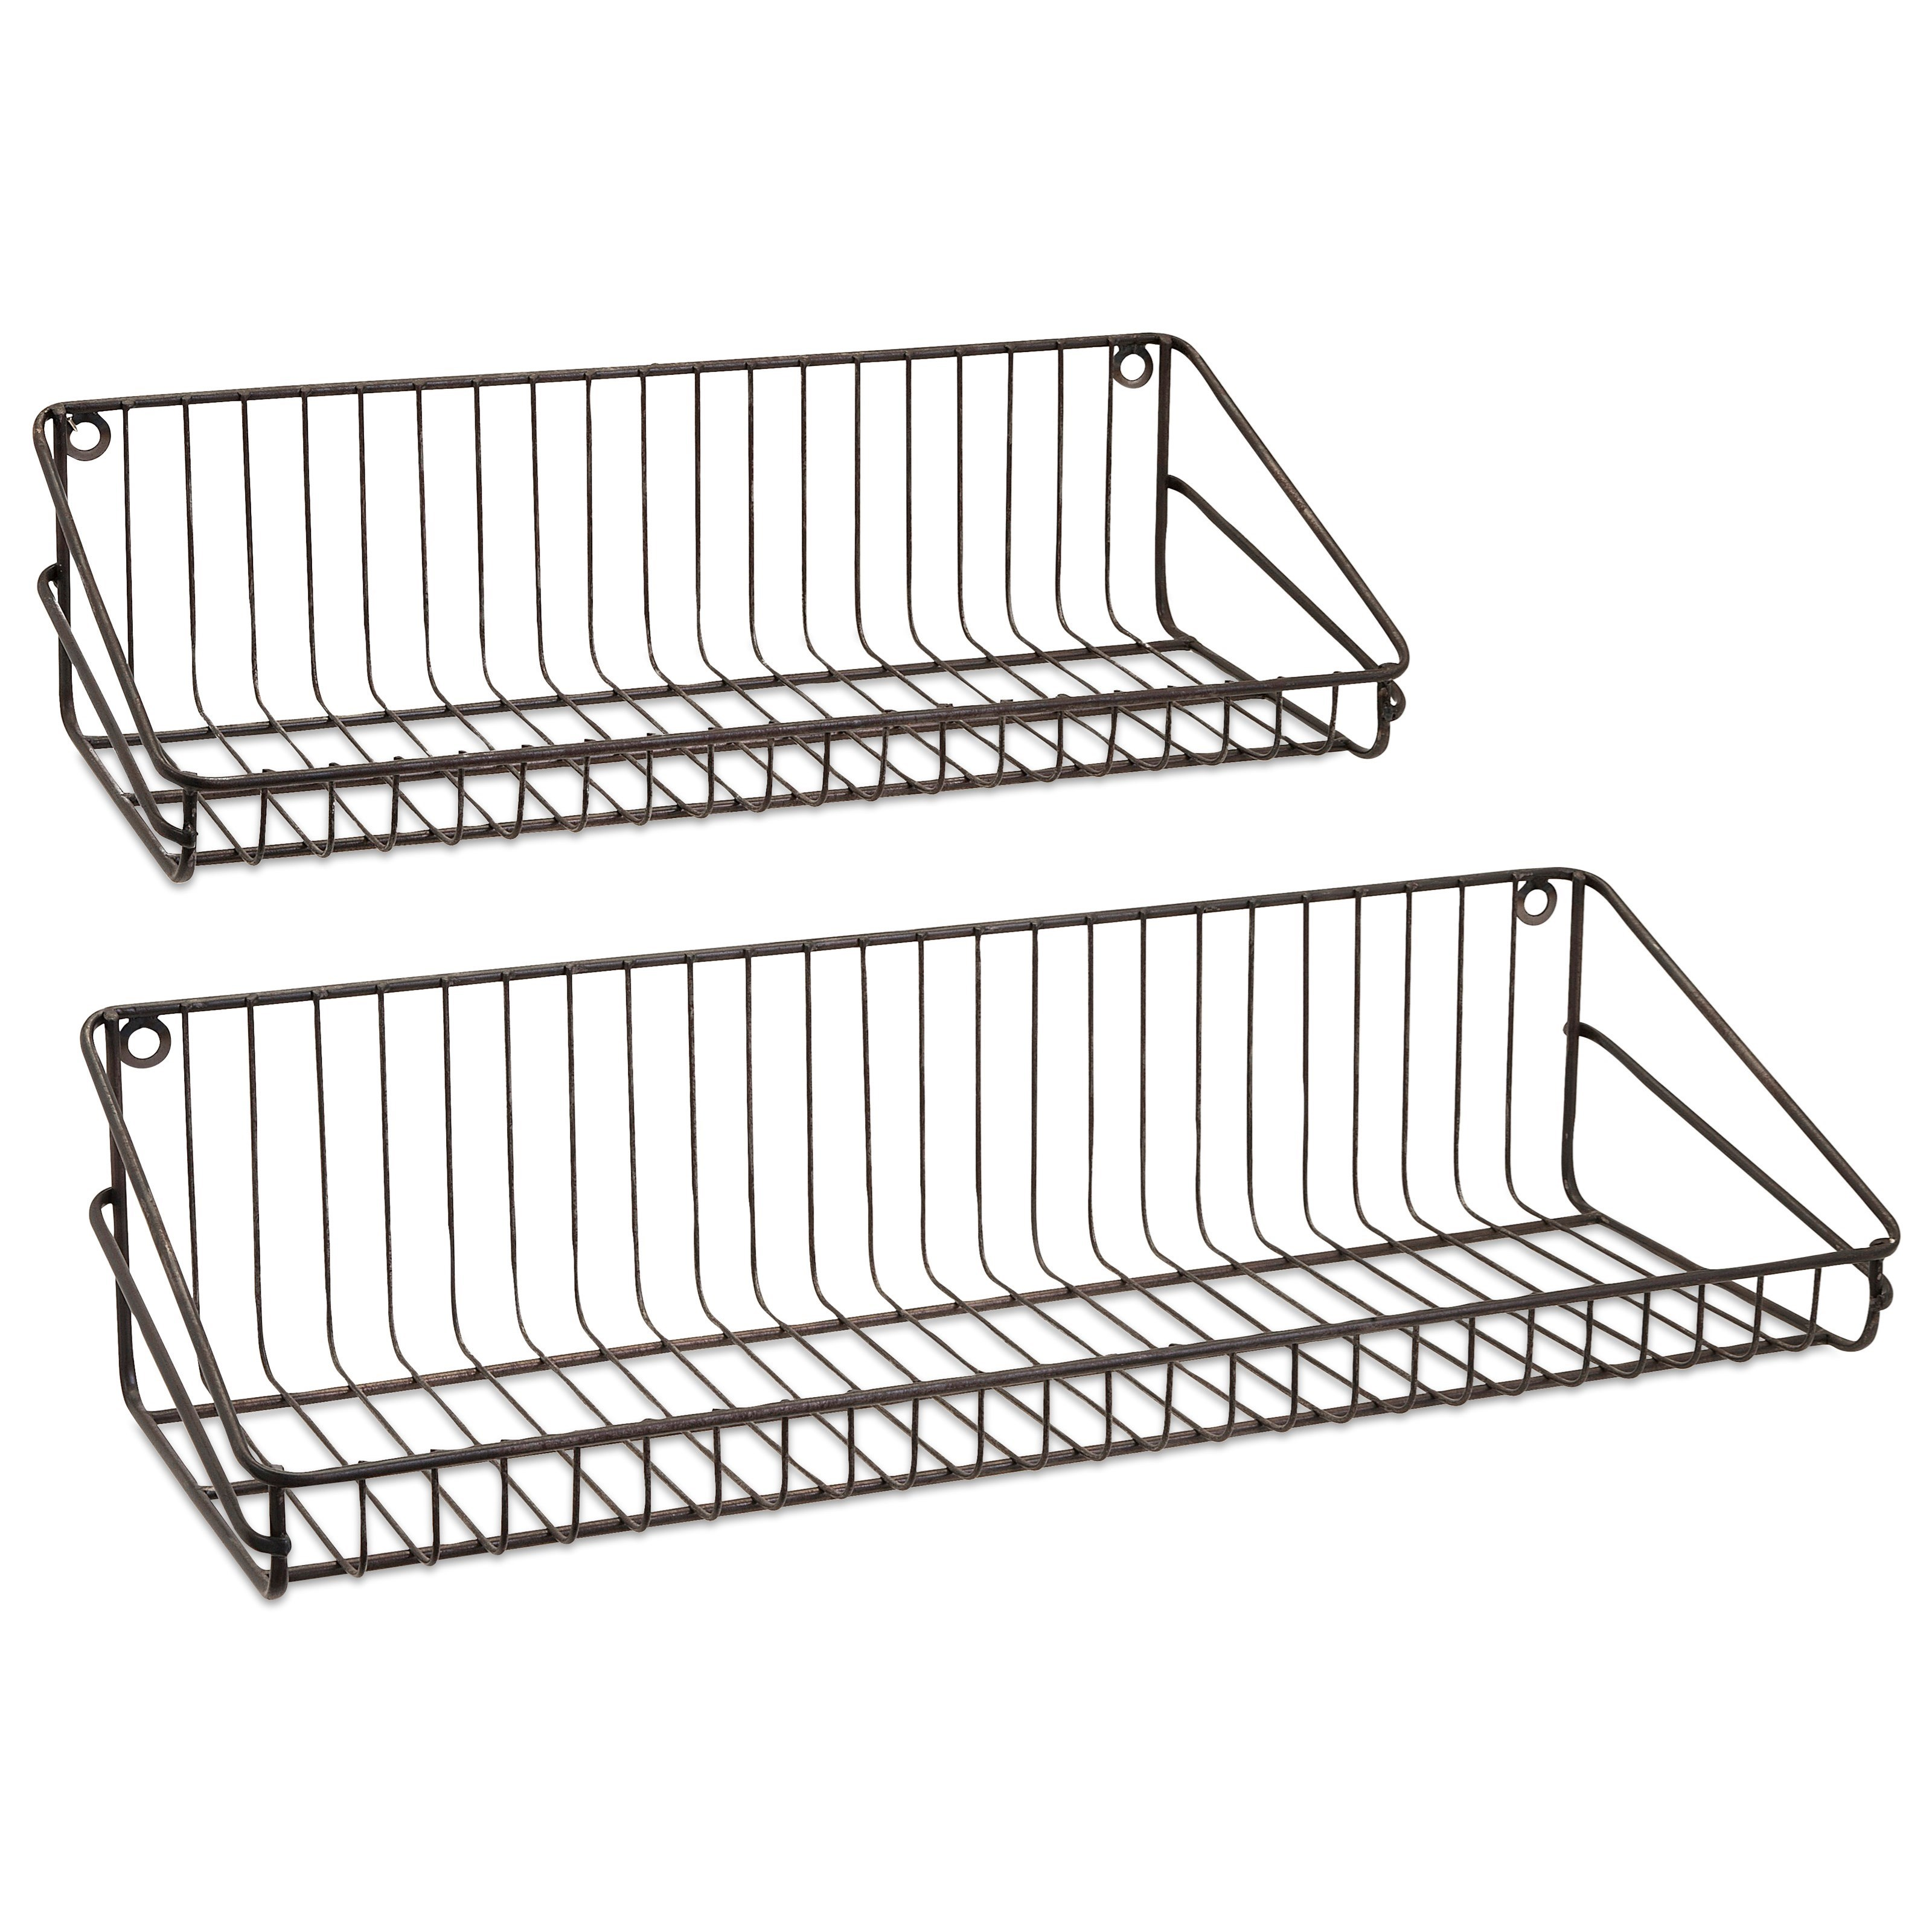 Accent Furniture Ludovic Wall Shelf - Set of 2 by IMAX Worldwide Home at Alison Craig Home Furnishings